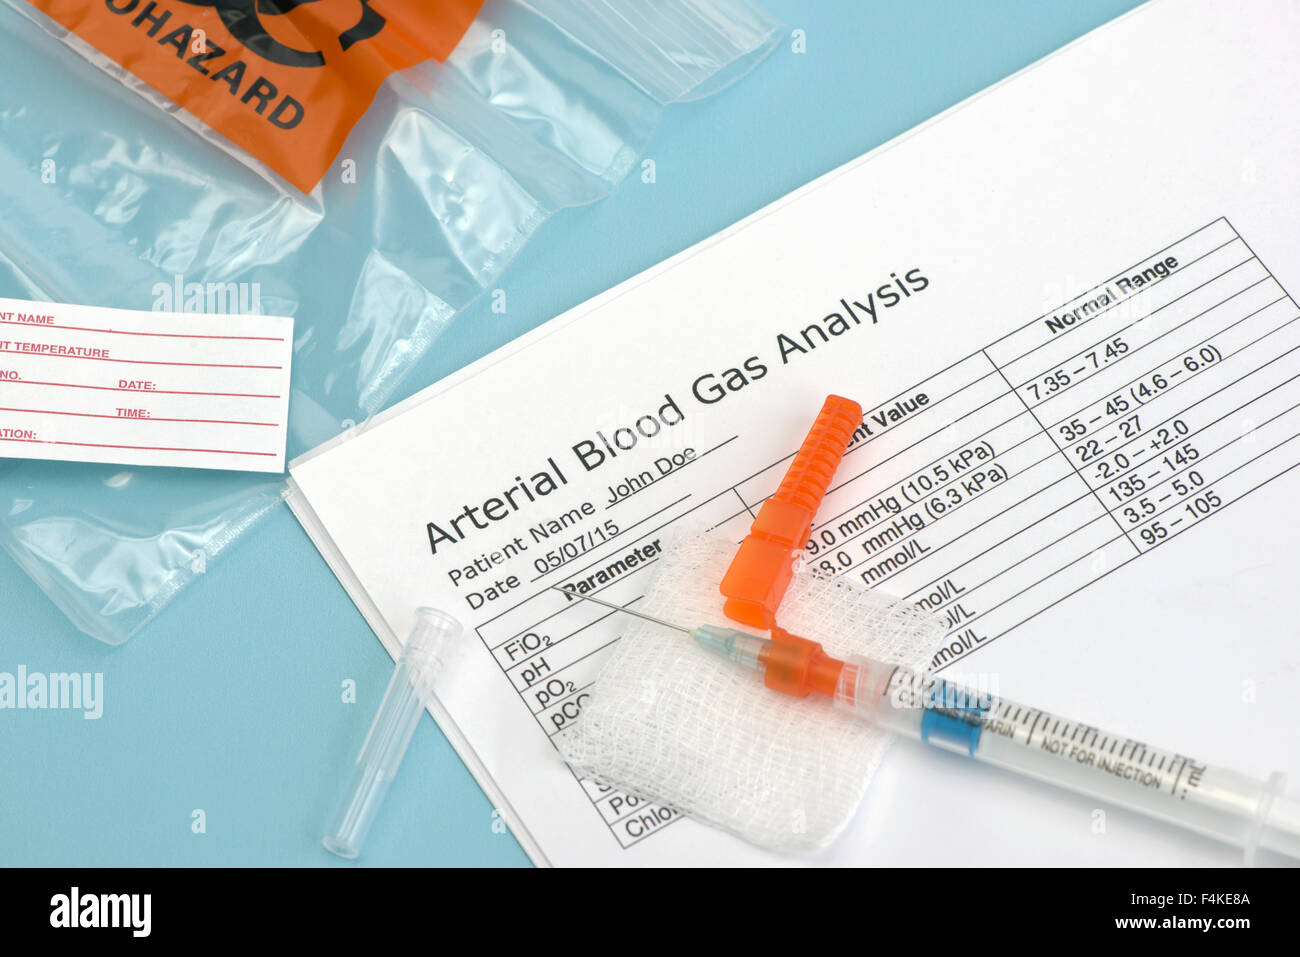 Arterial blood gas sample syringe on sterile drape with laboratory report.  Heparin is a common non-trademarked - Stock Image